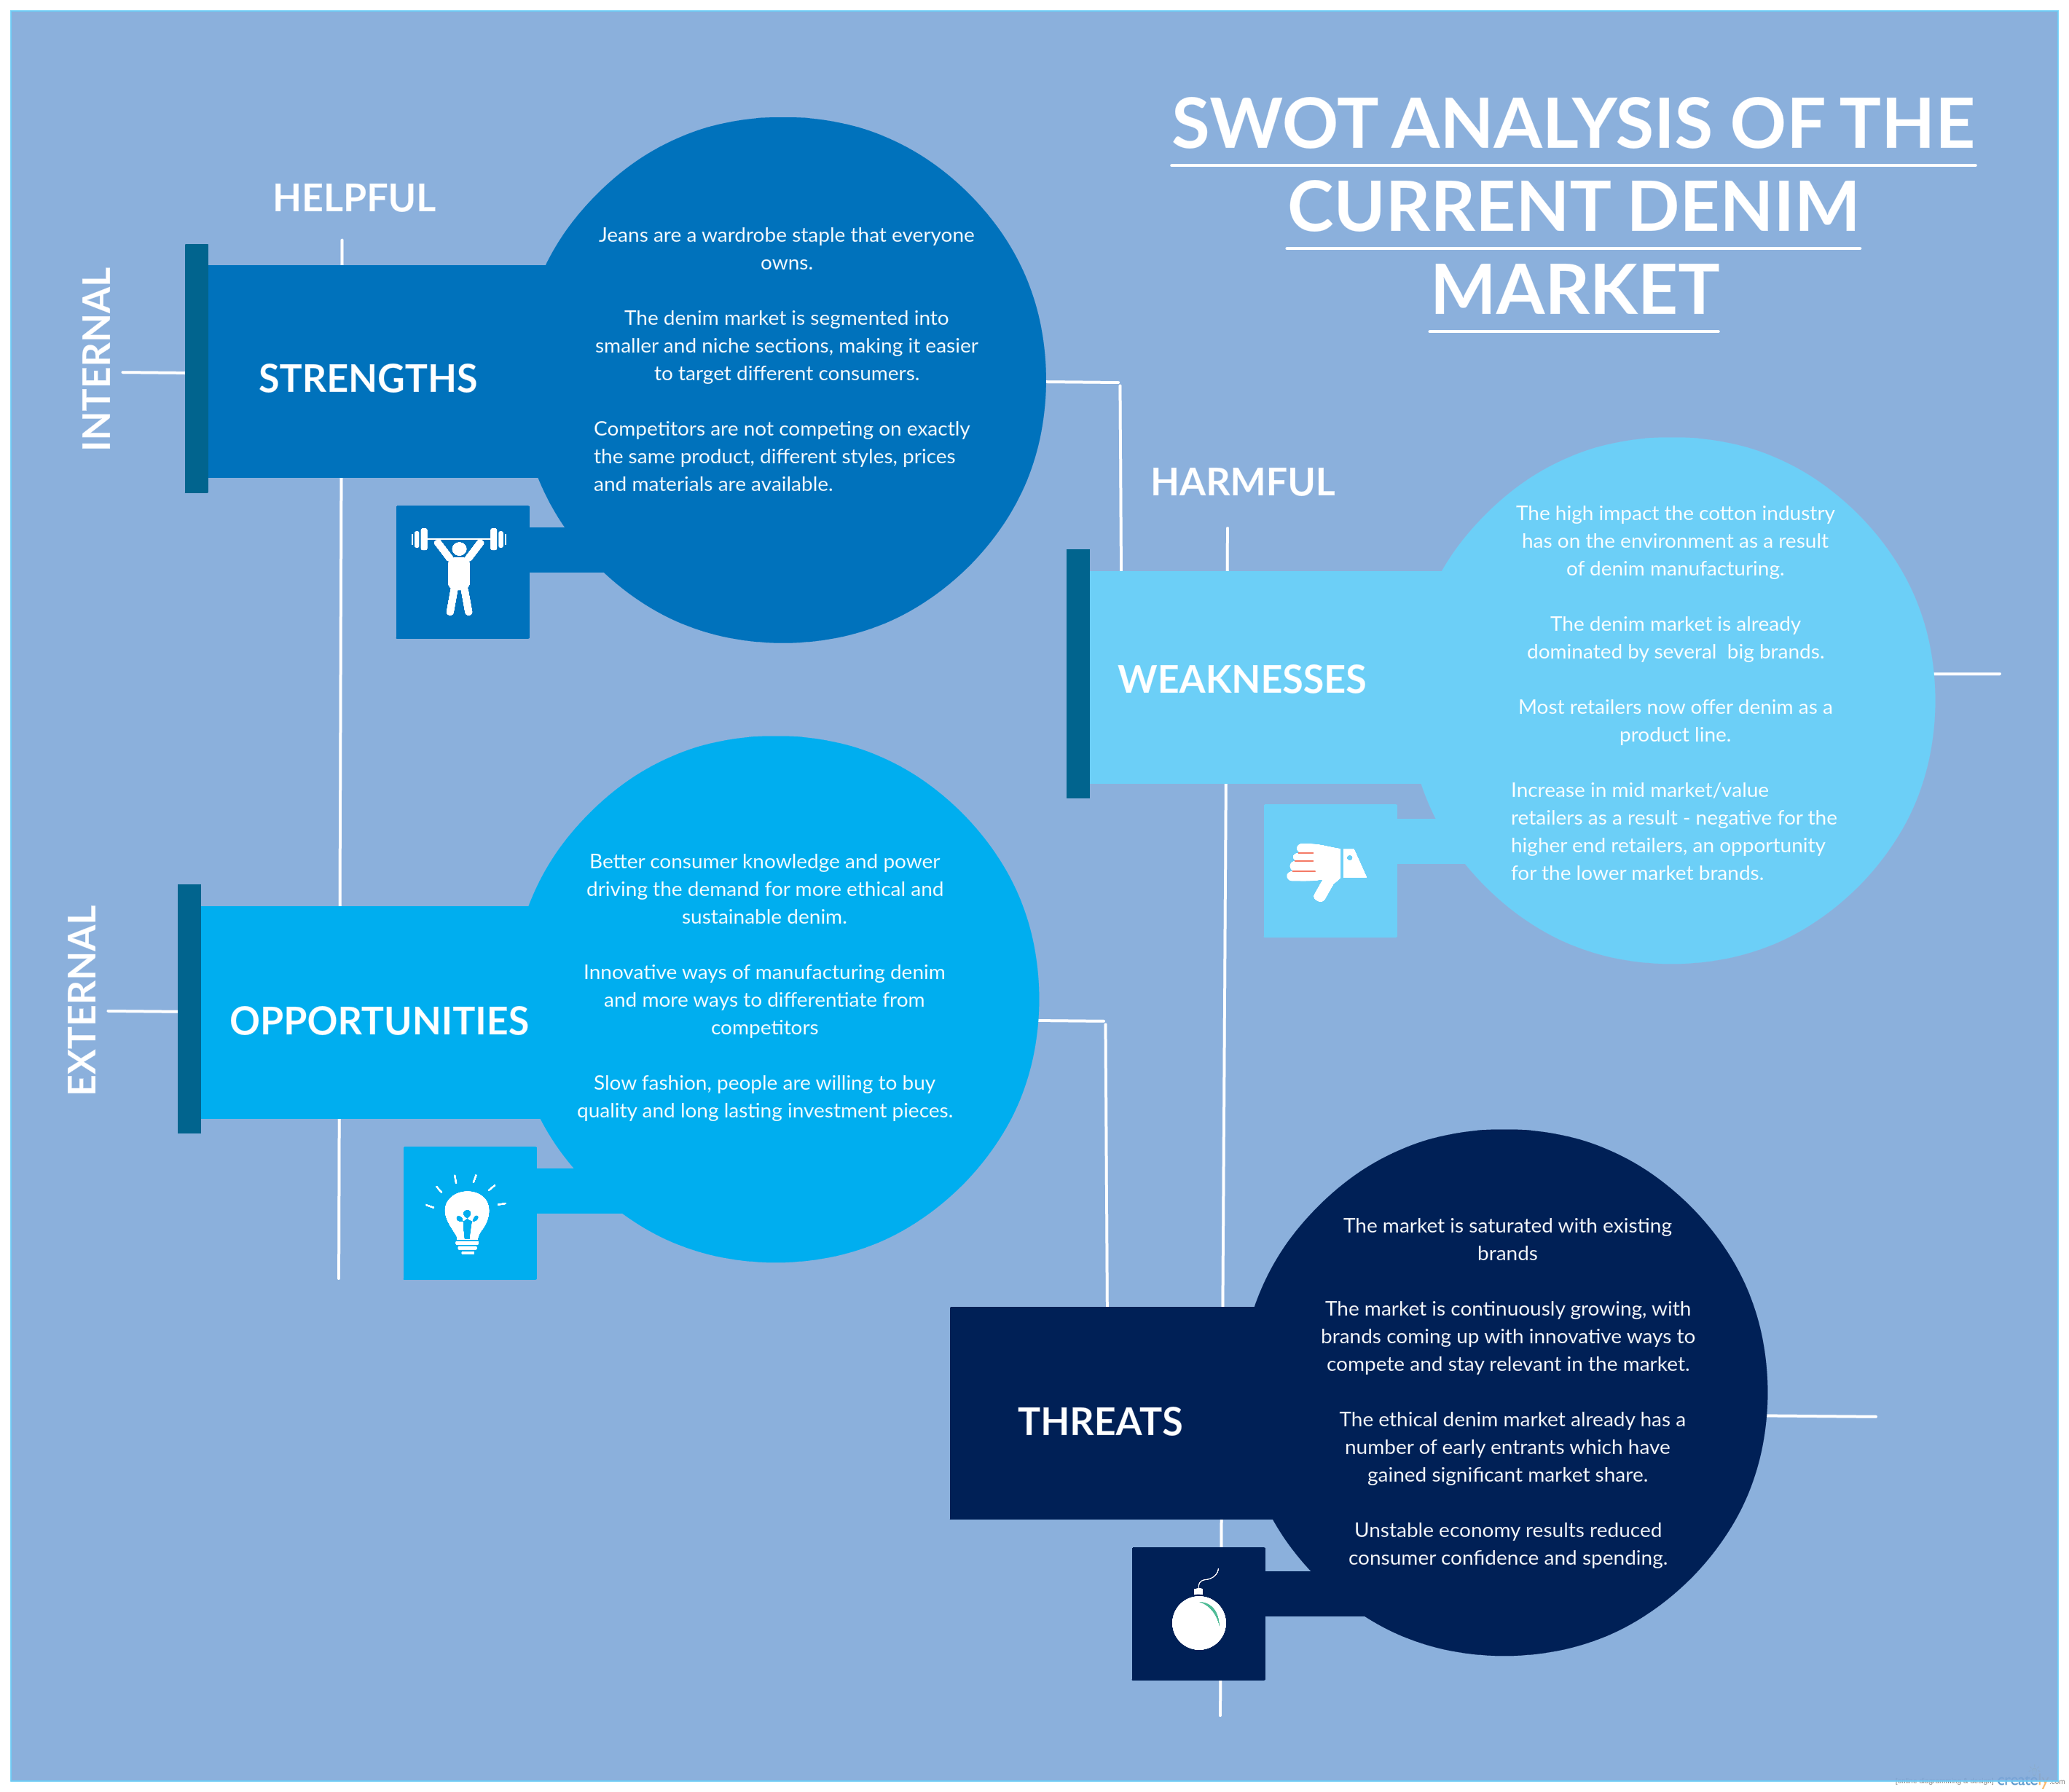 Swot Analytic Of The Current Denim Market An Interesting Facts On